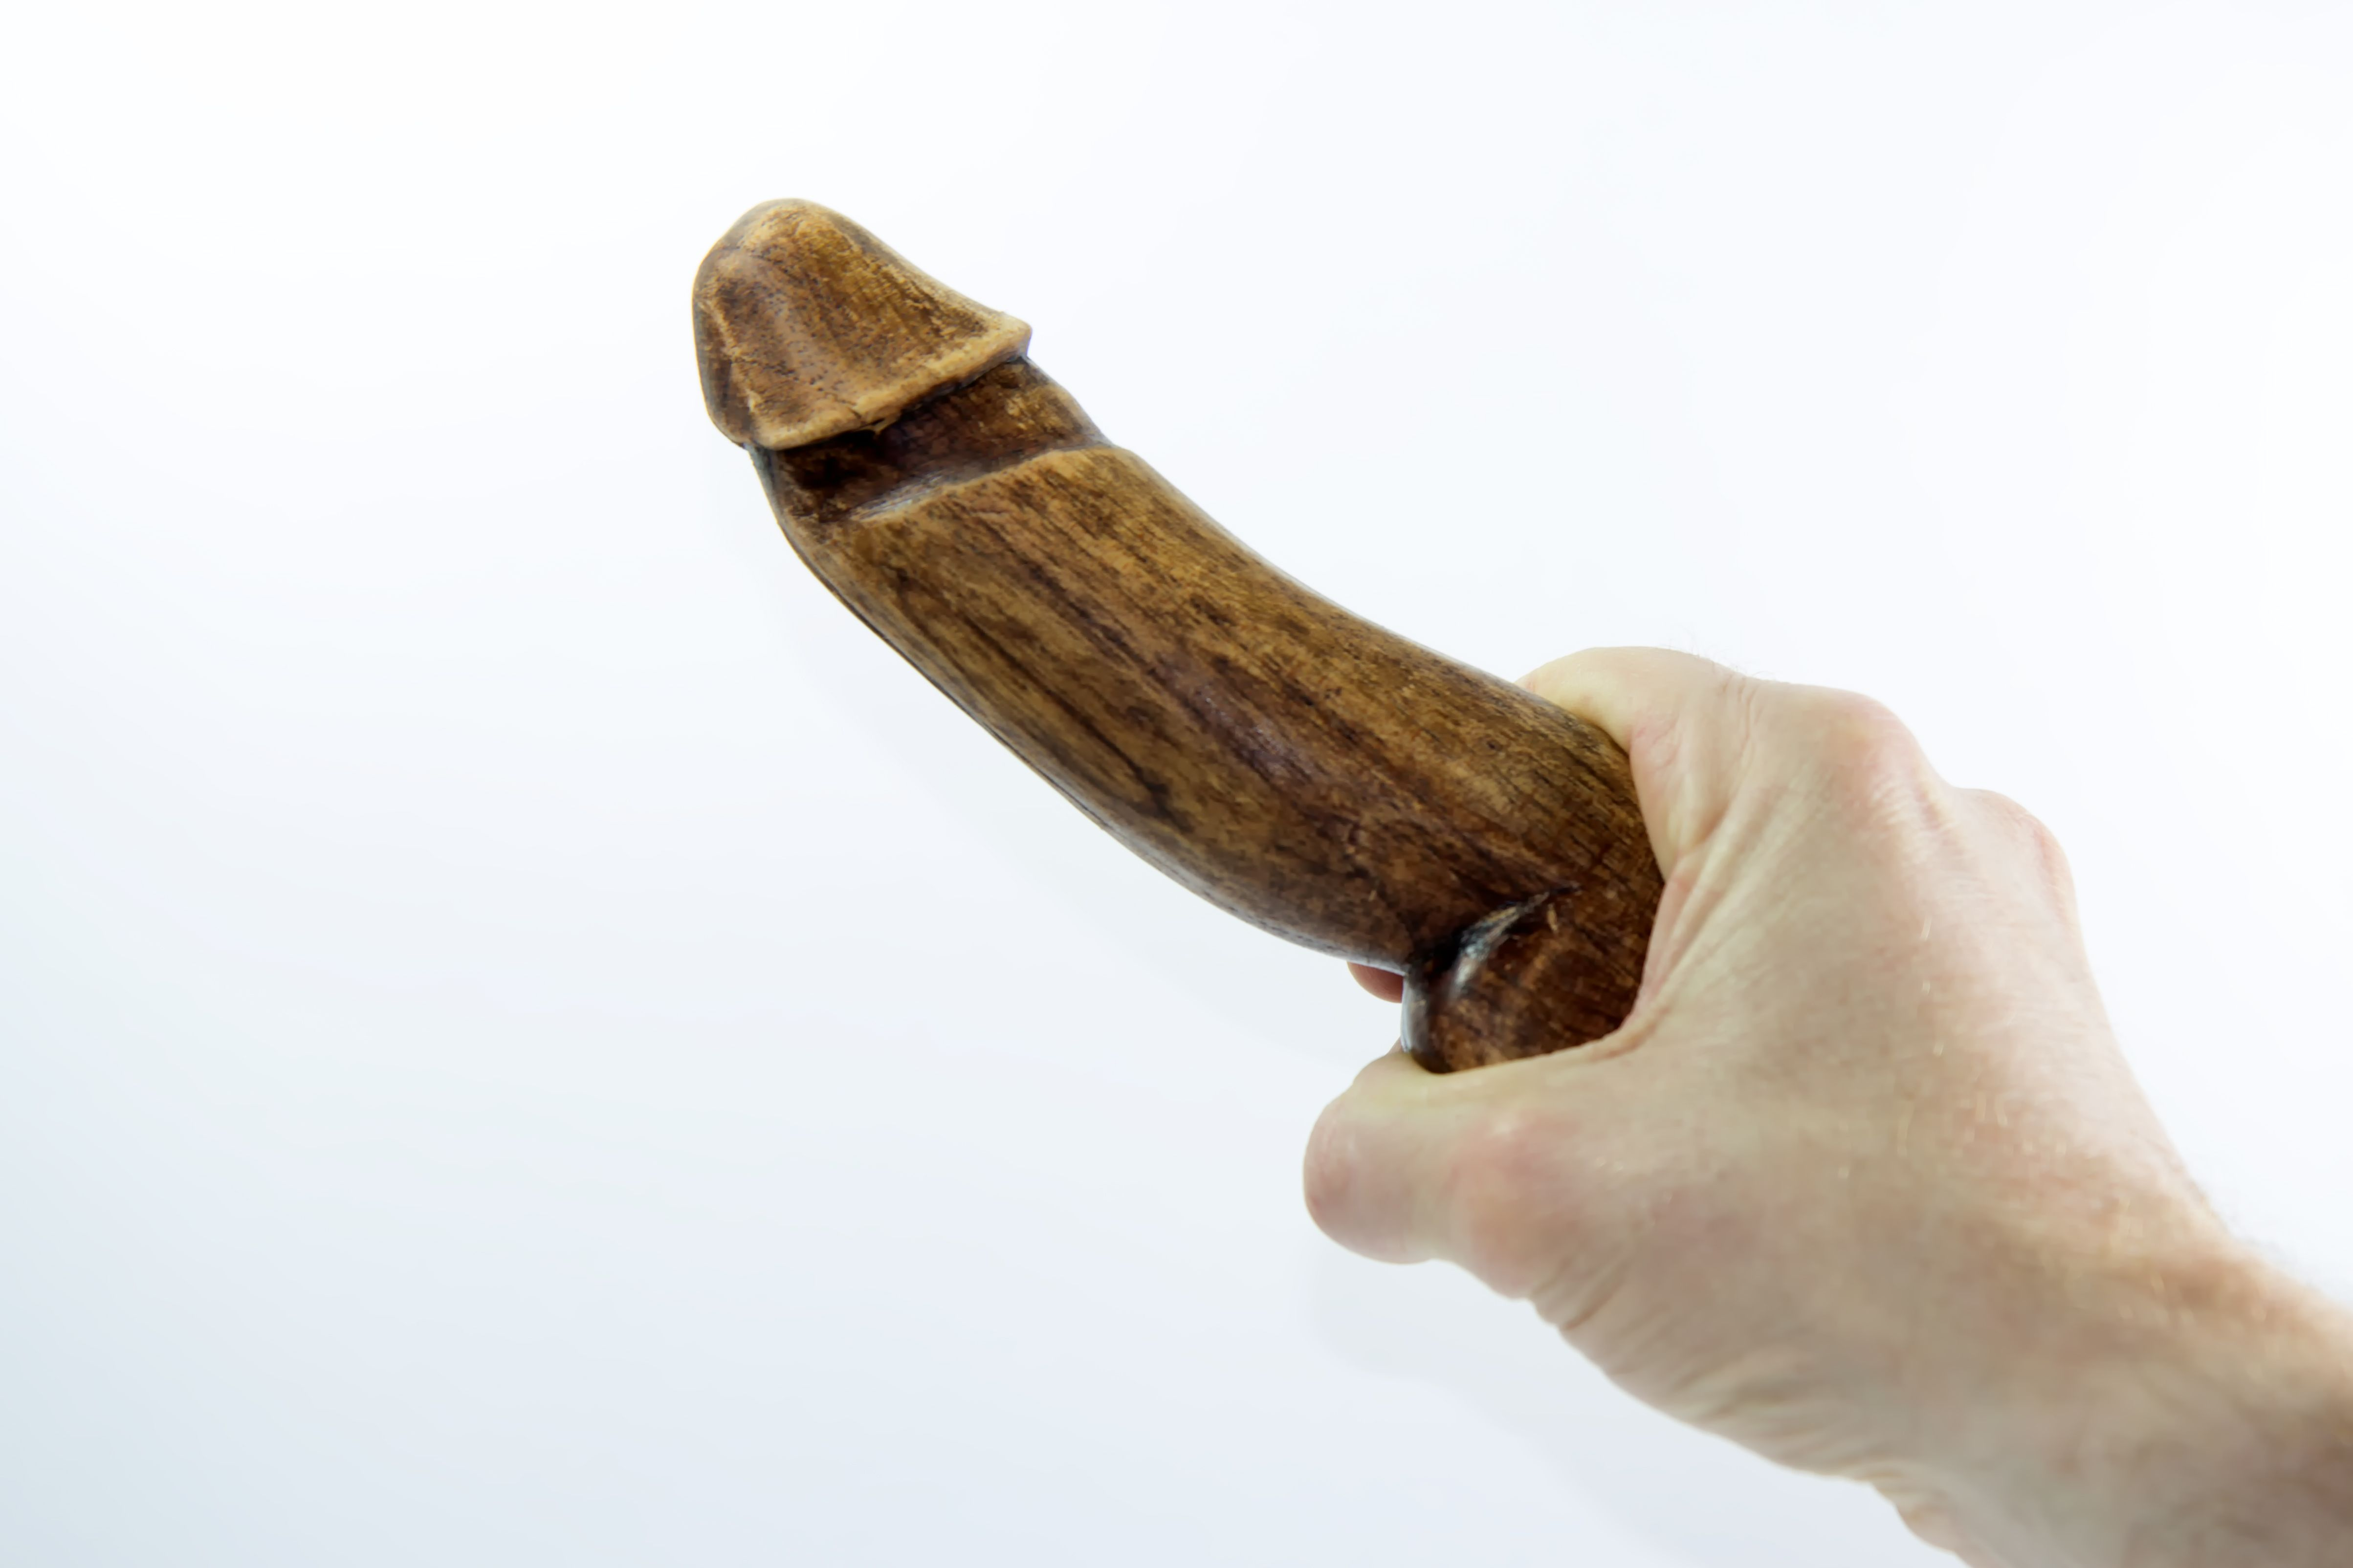 Why Do You Get Morning Wood? Believe It Or Not, There's an Important Scientific Reason